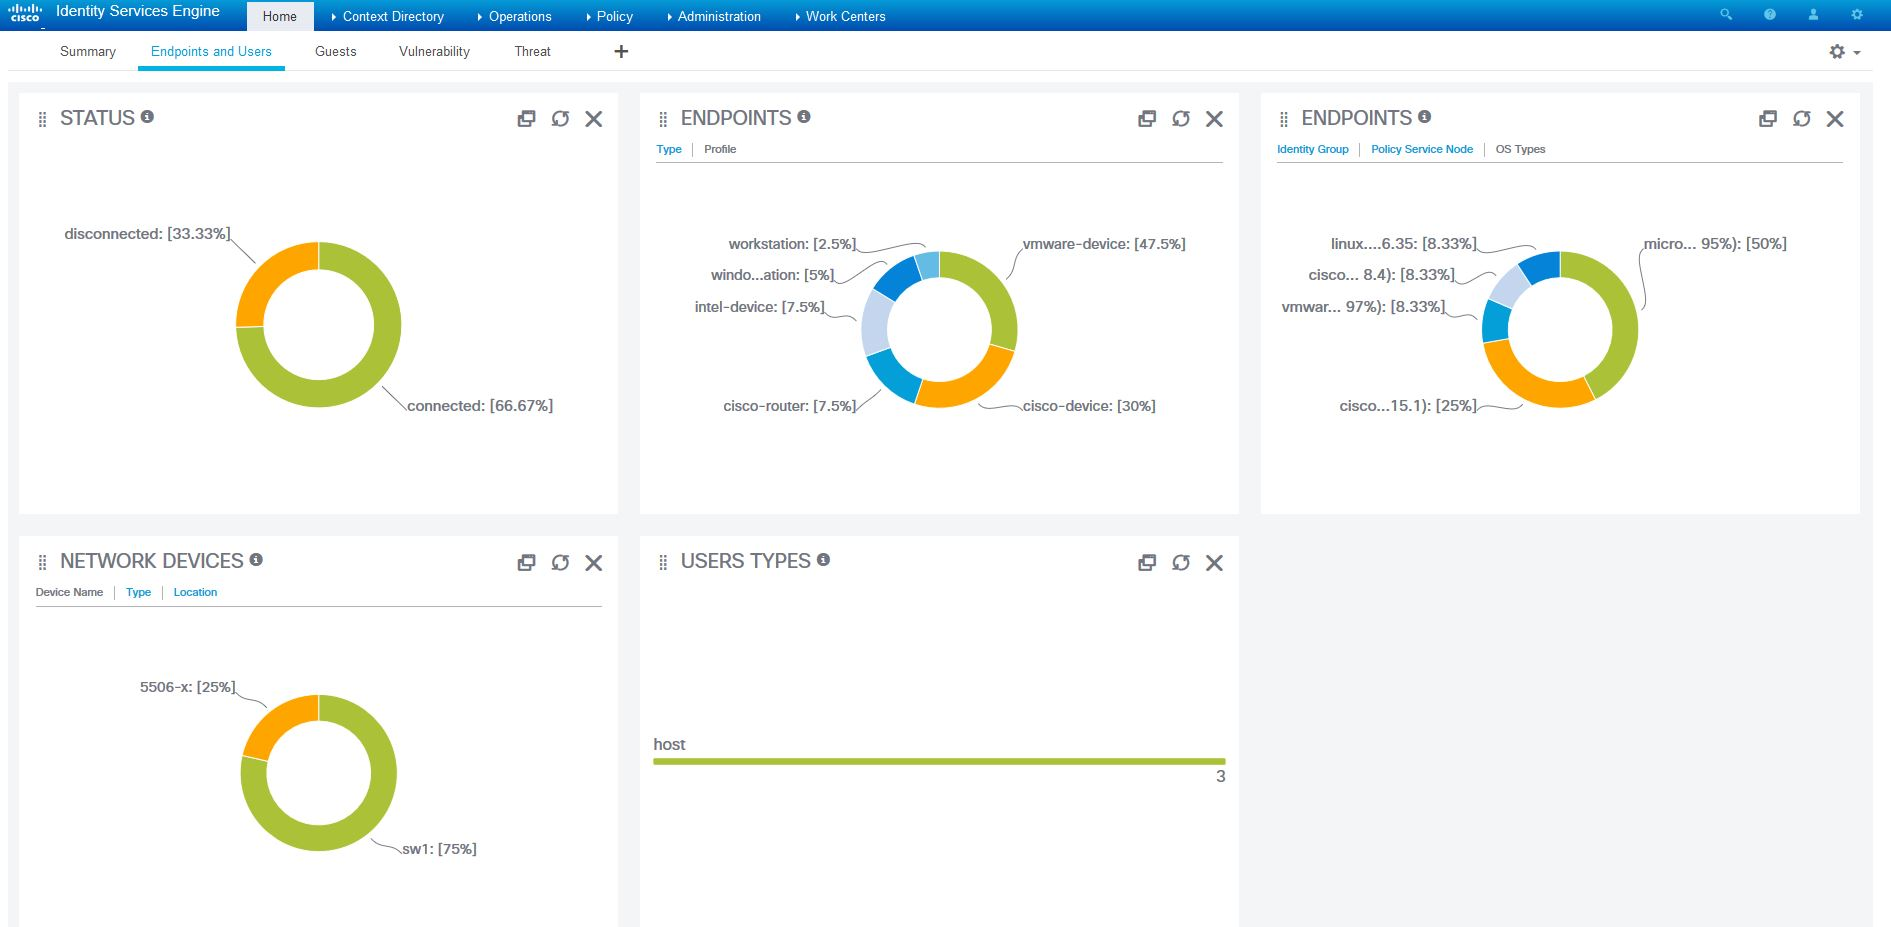 Endpoints and Users Dashboard